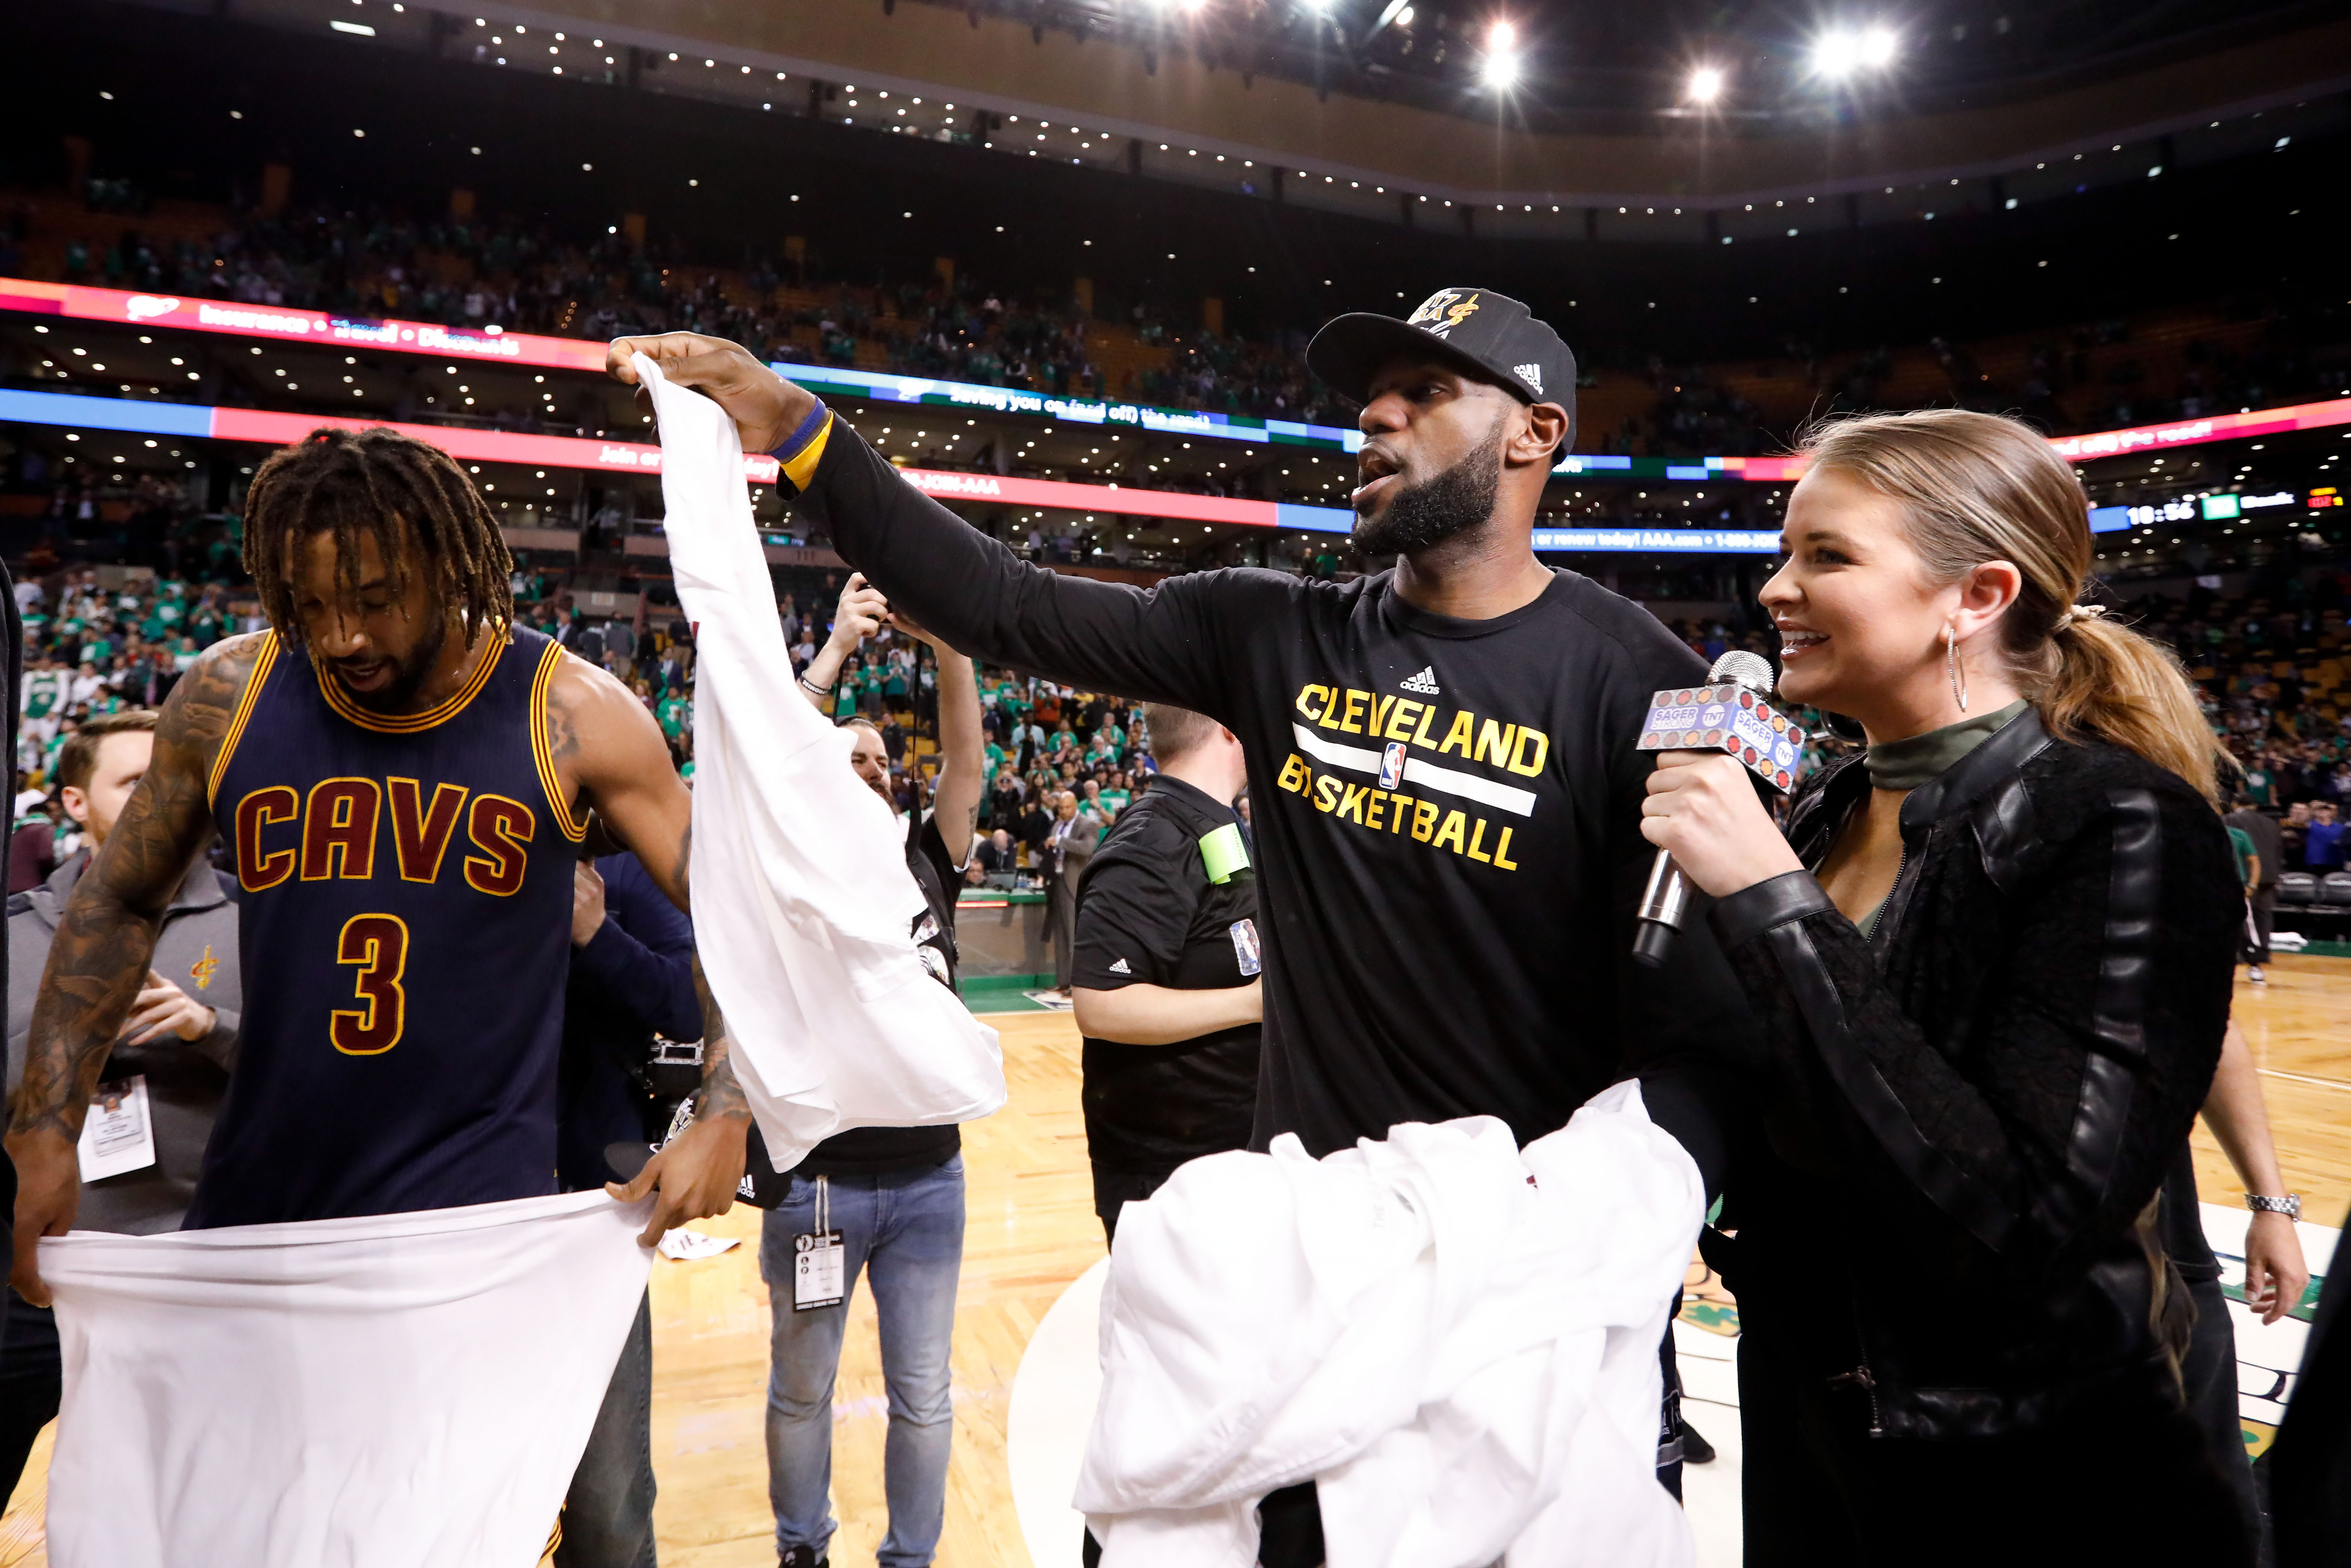 10073592-nba-playoffs-cleveland-cavaliers-at-boston-celtics